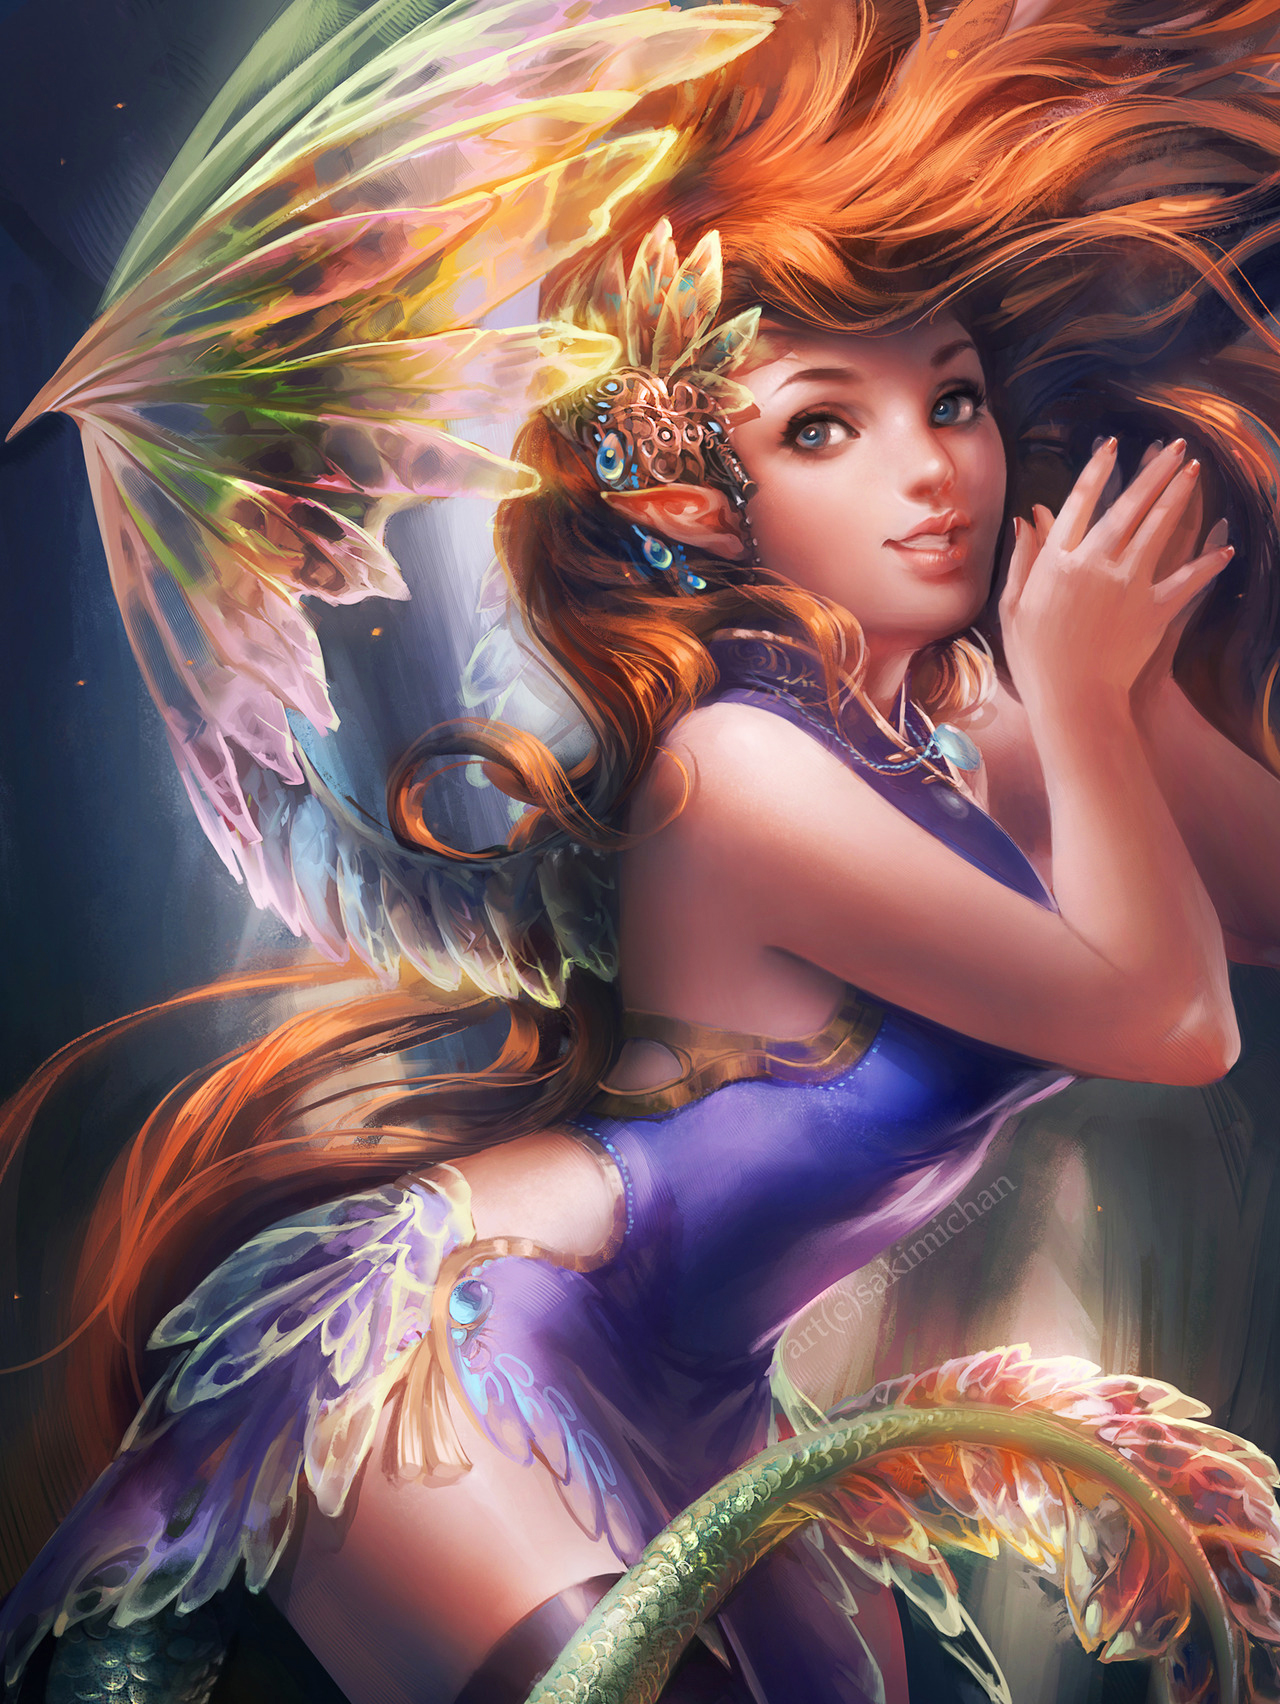 Ifx fairy by sakimichan on deviantart for Buy digital art online